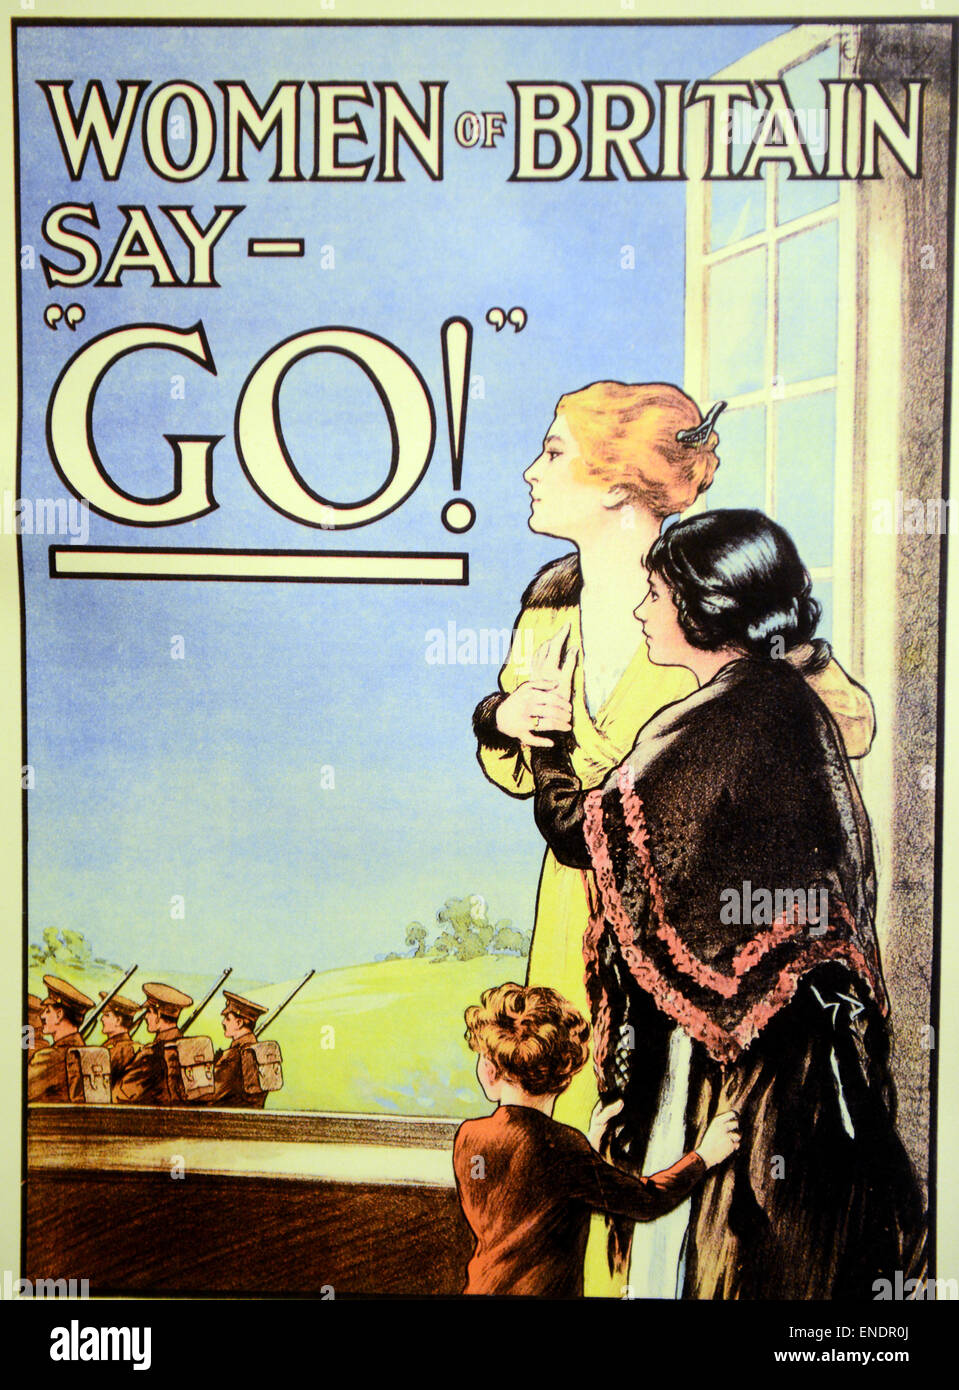 Go To Ww Bing Comhelloo: World War One 1 Propaganda Poster Campaign 'Women Of